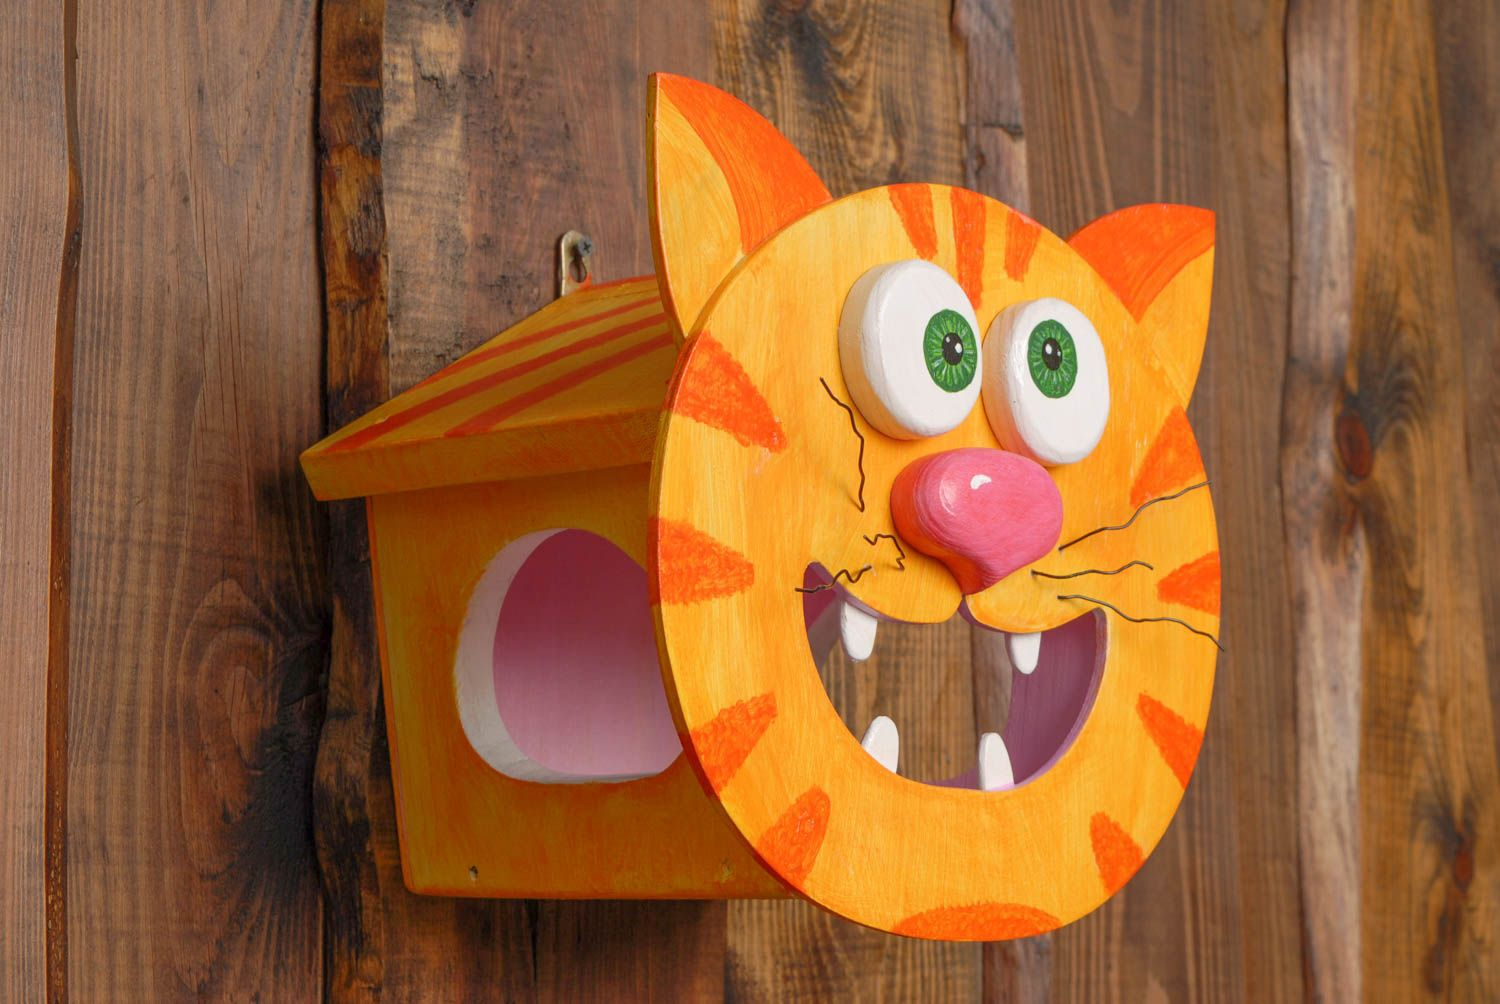 pet houses Wooden bird feeder in the shape of cat - MADEheart.com